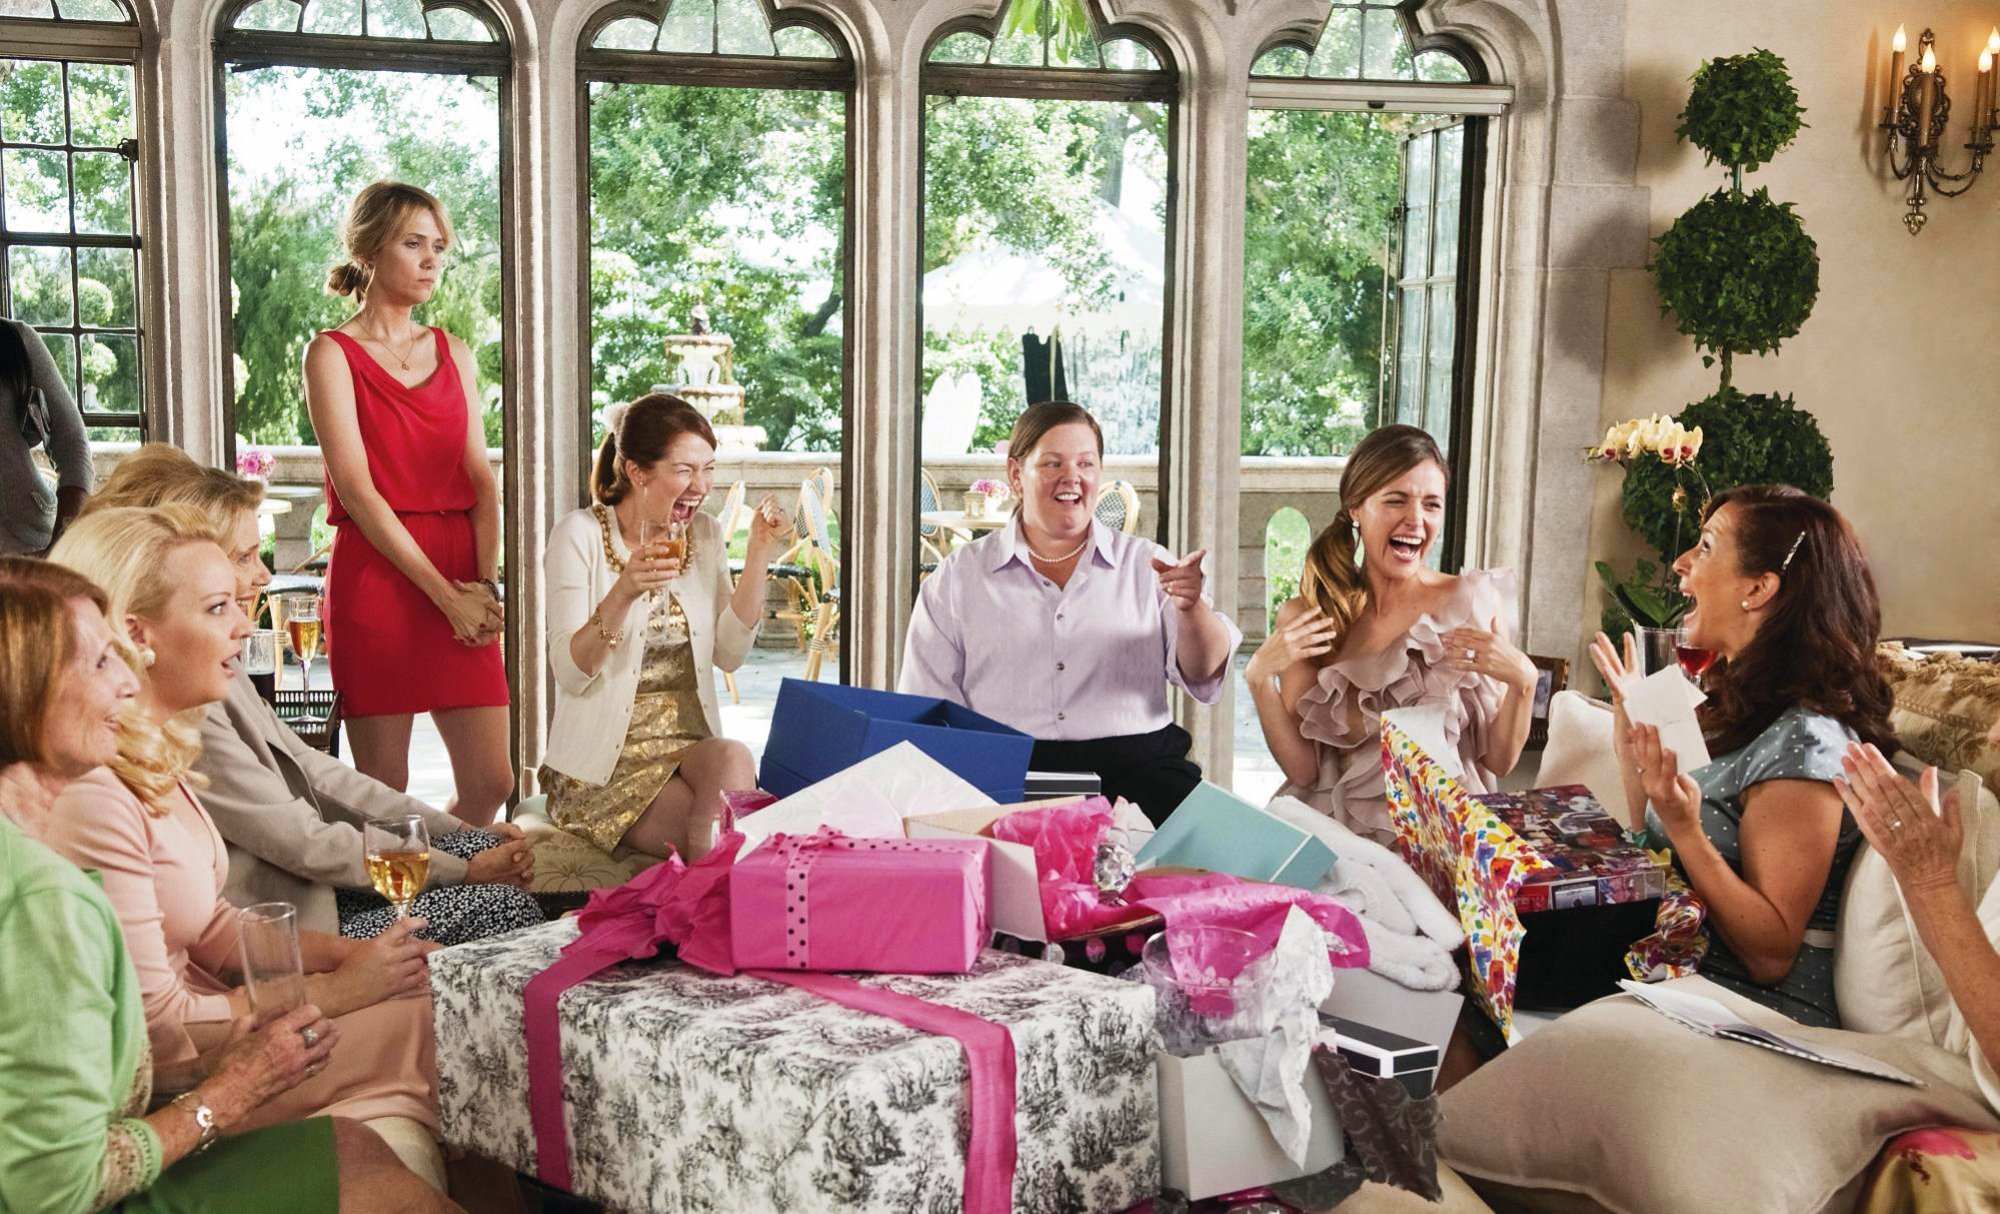 Wondering How Much To Spend On A Wedding Gift? Here Are 5